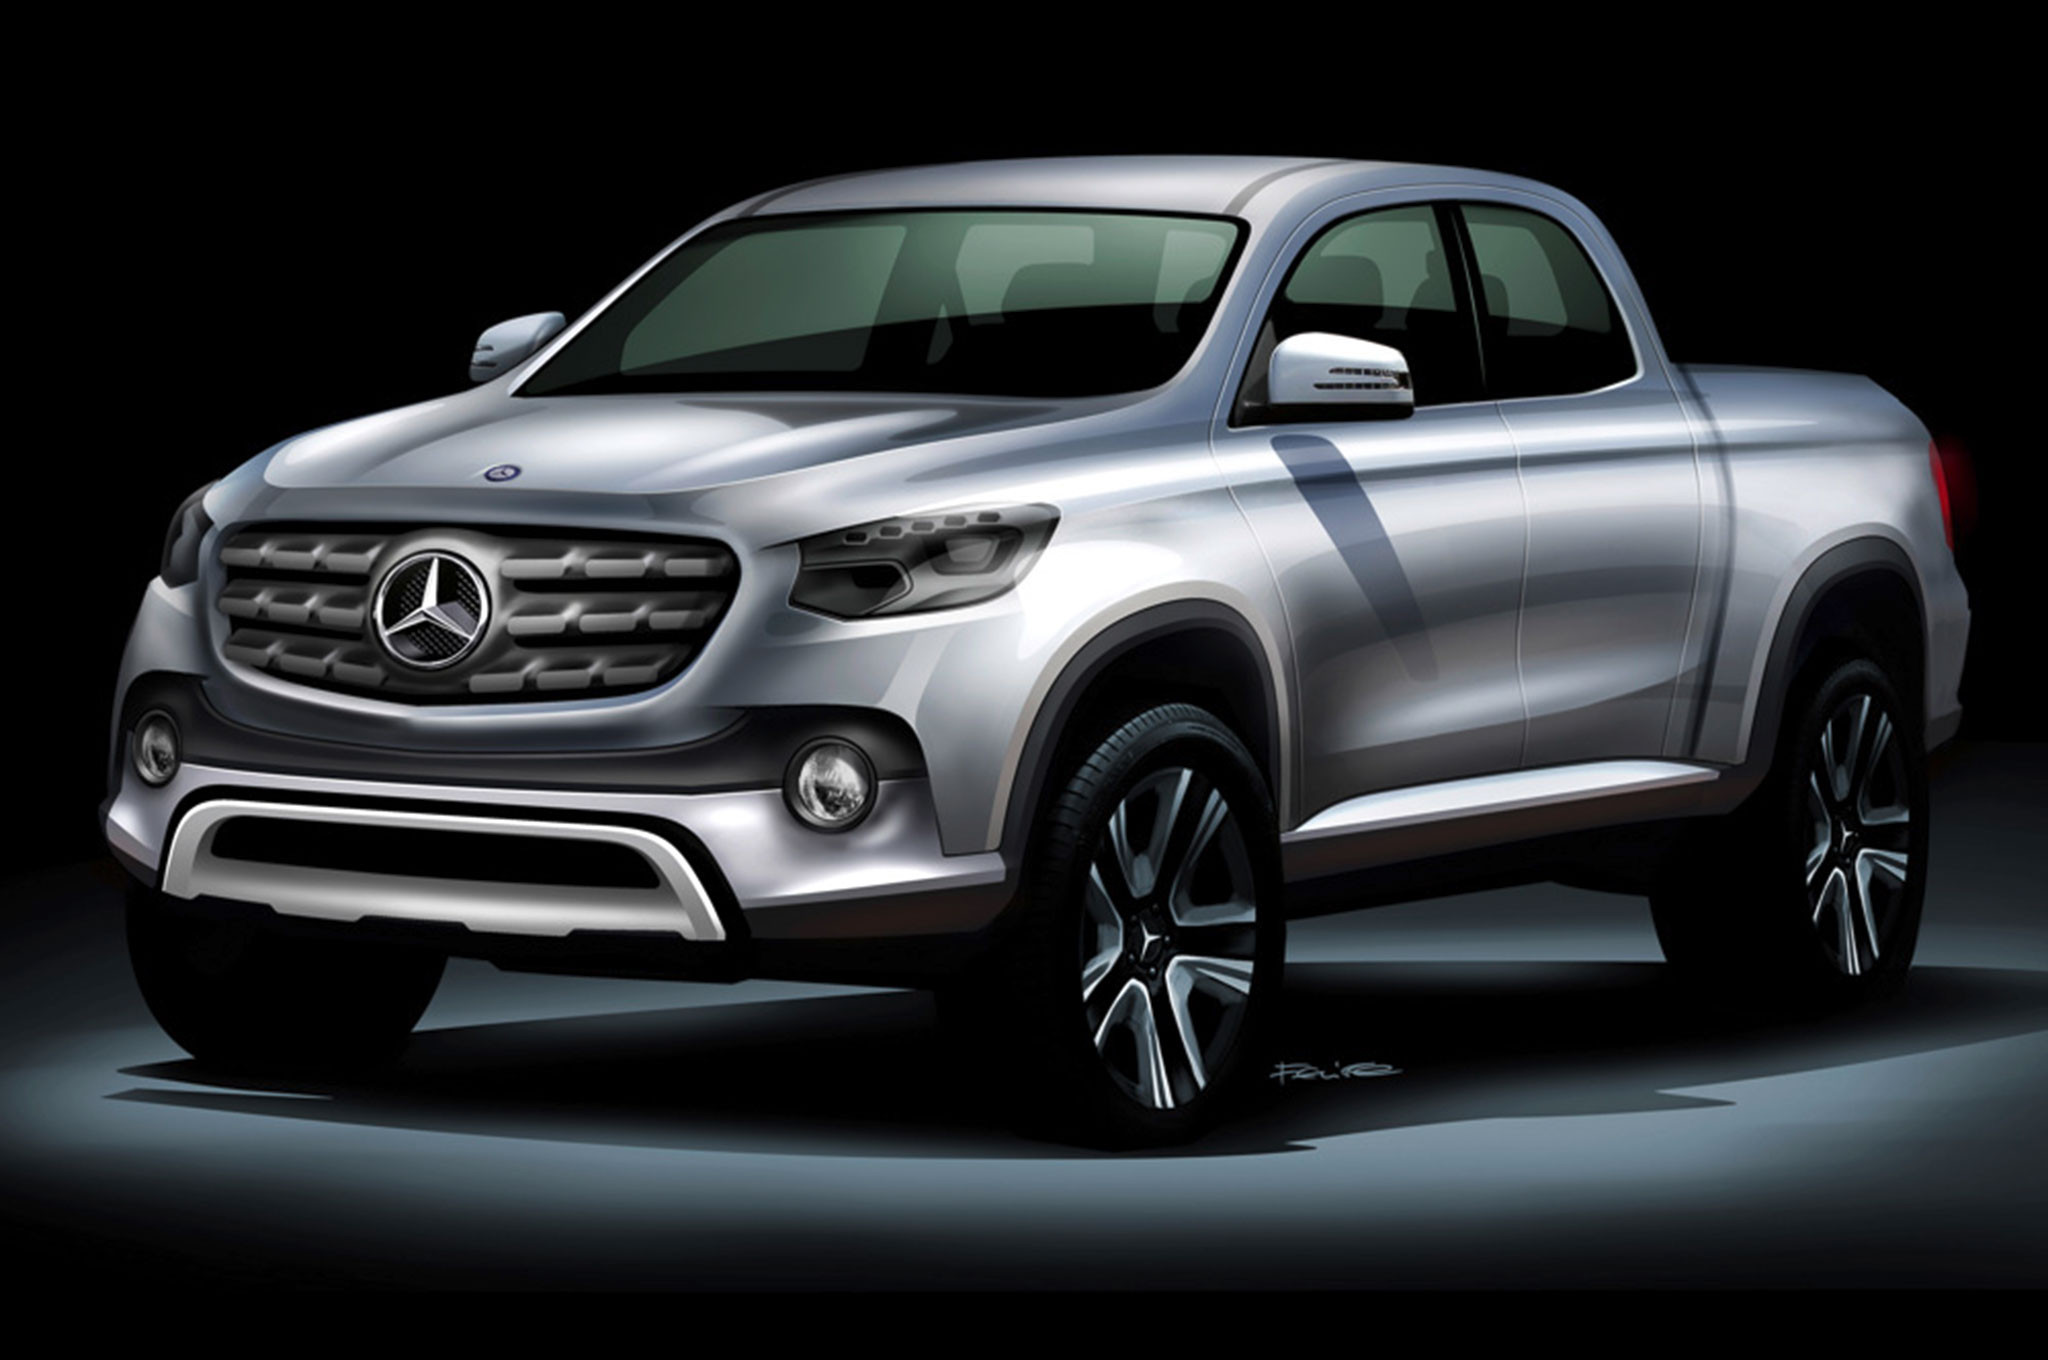 Will the Mercedes-Benz Pickup Truck be Based on a Nissan?